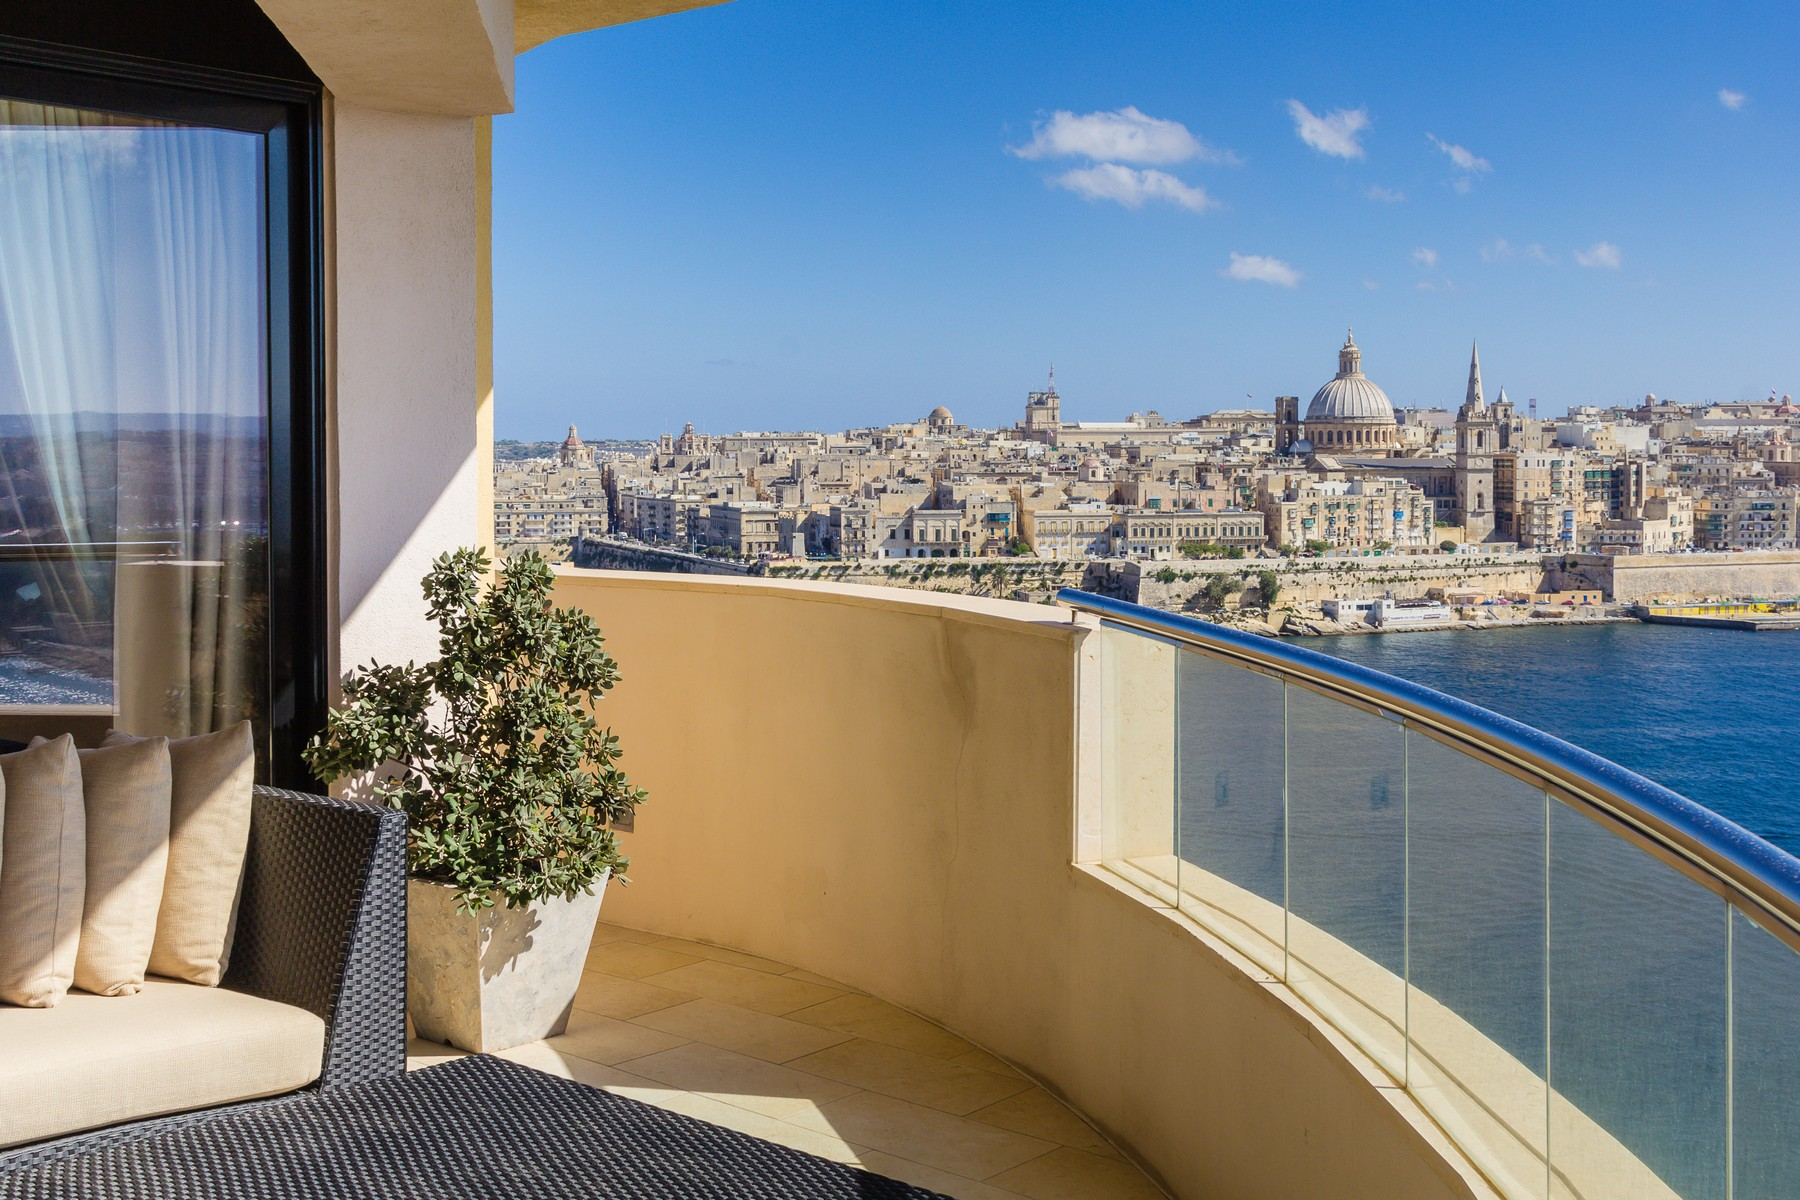 Apartment for Sale at Majestic Tigne Apartment With 360° Views Sliema, Malta